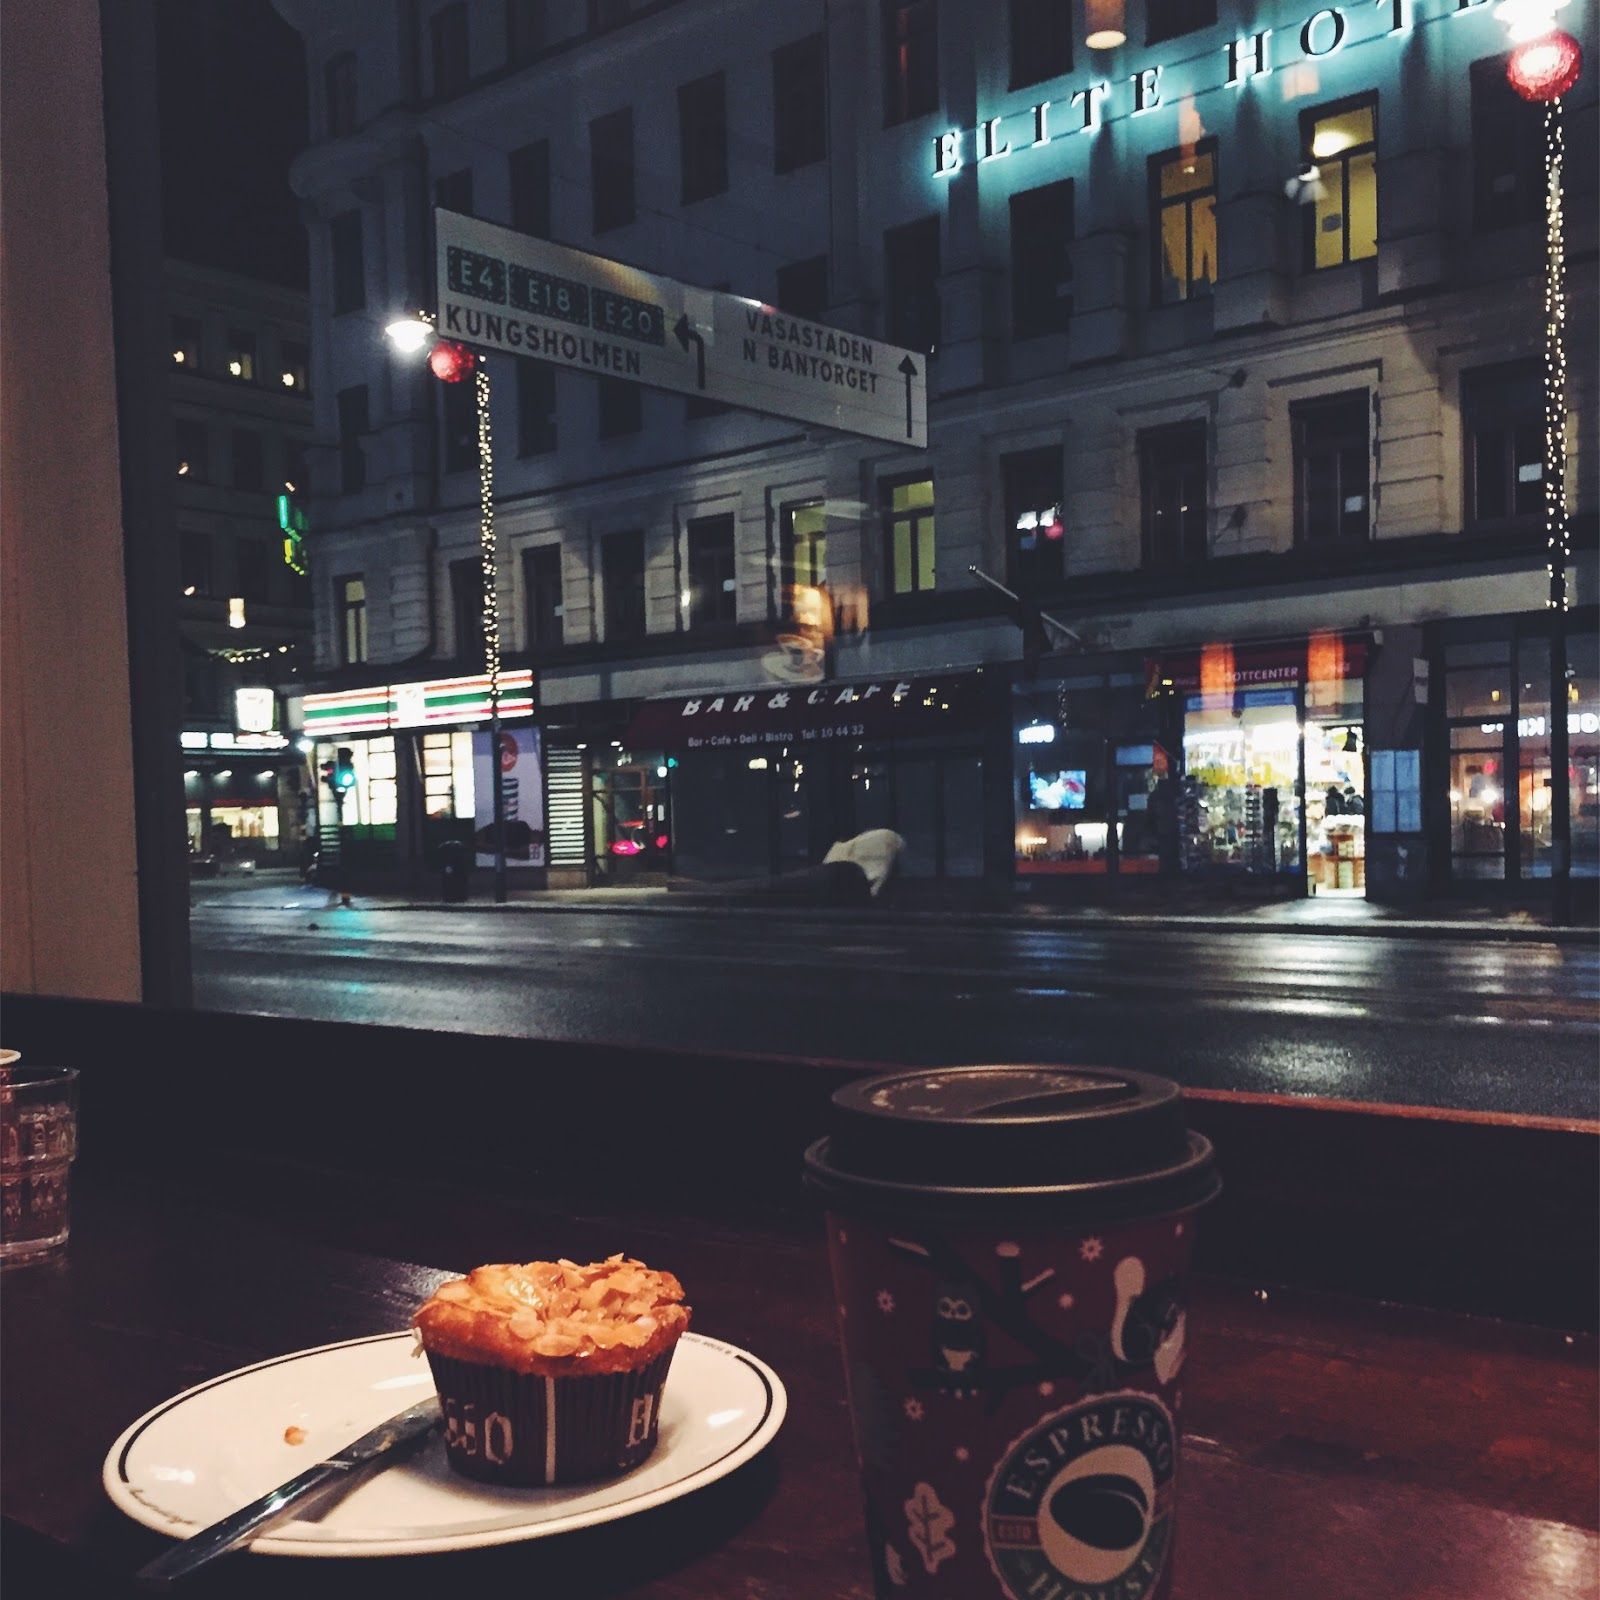 Coffee and Muffin at Espresso House in Stockholm